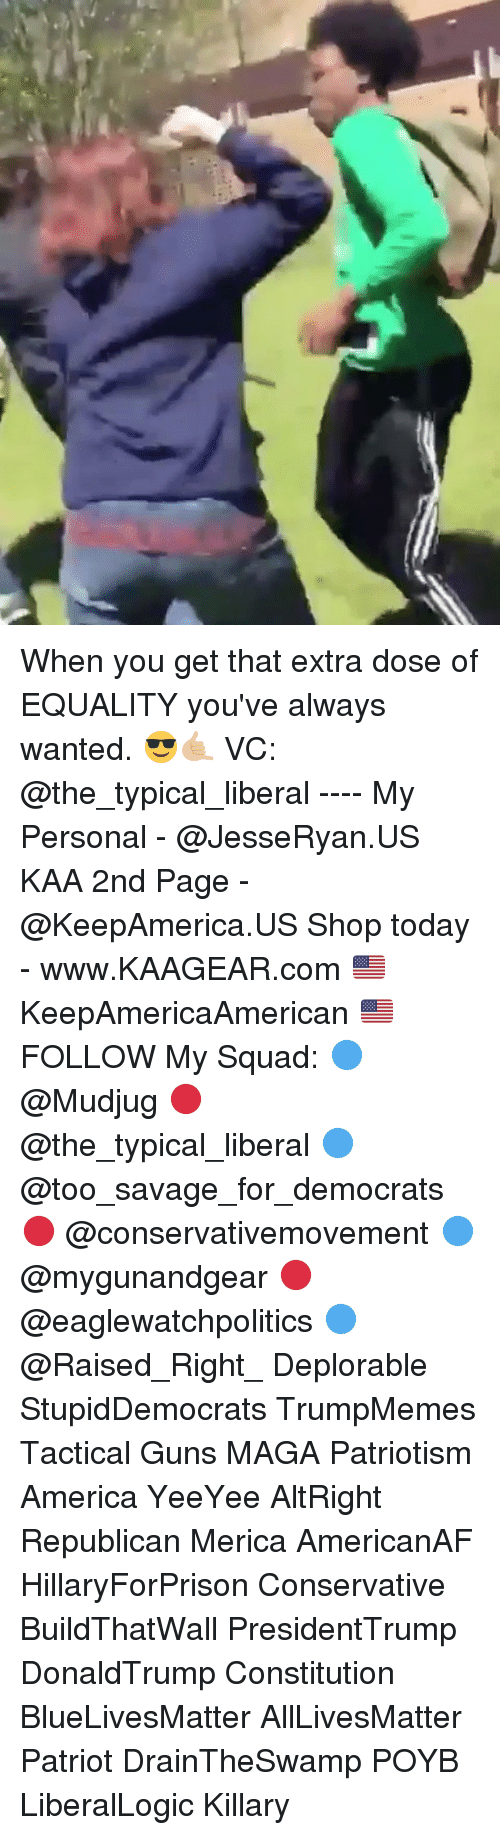 All Lives Matter, America, and Guns: When you get that extra dose of EQUALITY you've always wanted. 😎🤙🏼 VC: @the_typical_liberal ---- My Personal - @JesseRyan.US KAA 2nd Page - @KeepAmerica.US Shop today - www.KAAGEAR.com 🇺🇸 KeepAmericaAmerican 🇺🇸 FOLLOW My Squad: 🔵 @Mudjug 🔴 @the_typical_liberal 🔵 @too_savage_for_democrats 🔴 @conservativemovement 🔵 @mygunandgear 🔴 @eaglewatchpolitics 🔵 @Raised_Right_ Deplorable StupidDemocrats TrumpMemes Tactical Guns MAGA Patriotism America YeeYee AltRight Republican Merica AmericanAF HillaryForPrison Conservative BuildThatWall PresidentTrump DonaldTrump Constitution BlueLivesMatter AllLivesMatter Patriot DrainTheSwamp POYB LiberalLogic Killary